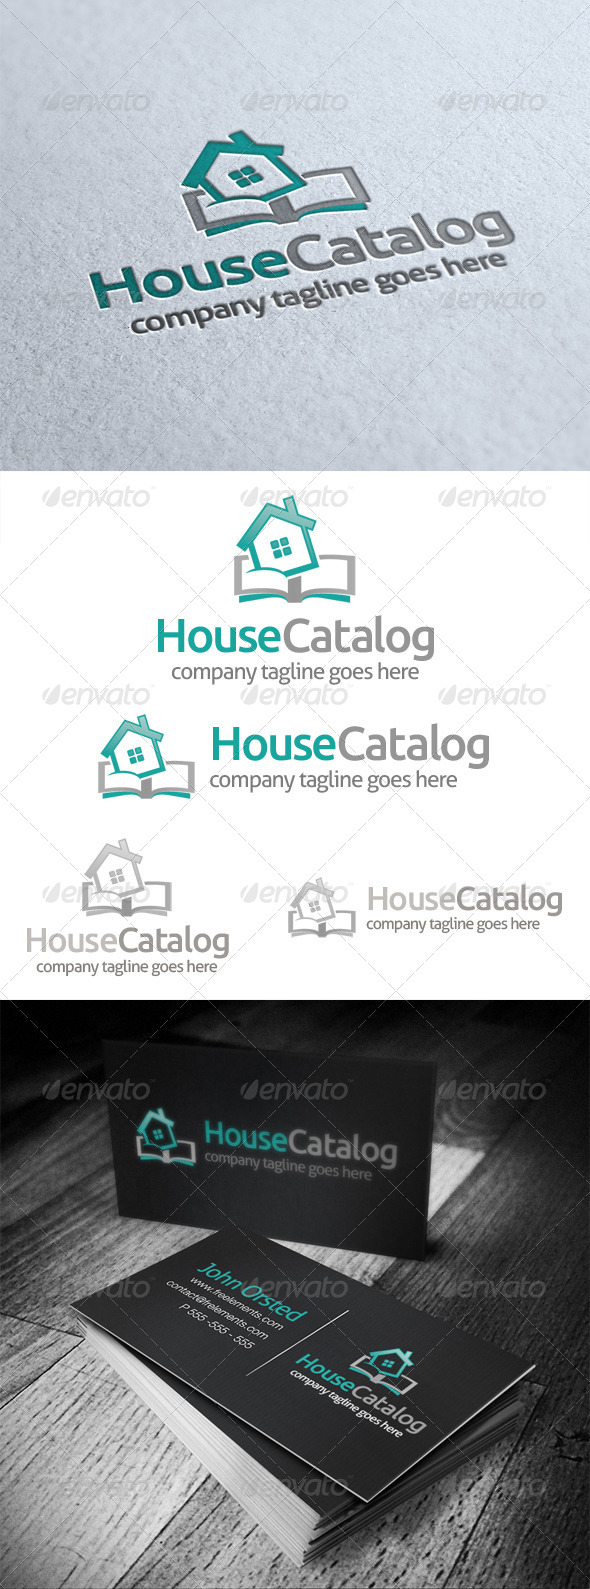 House Catalog Logo - Buildings Logo Templates